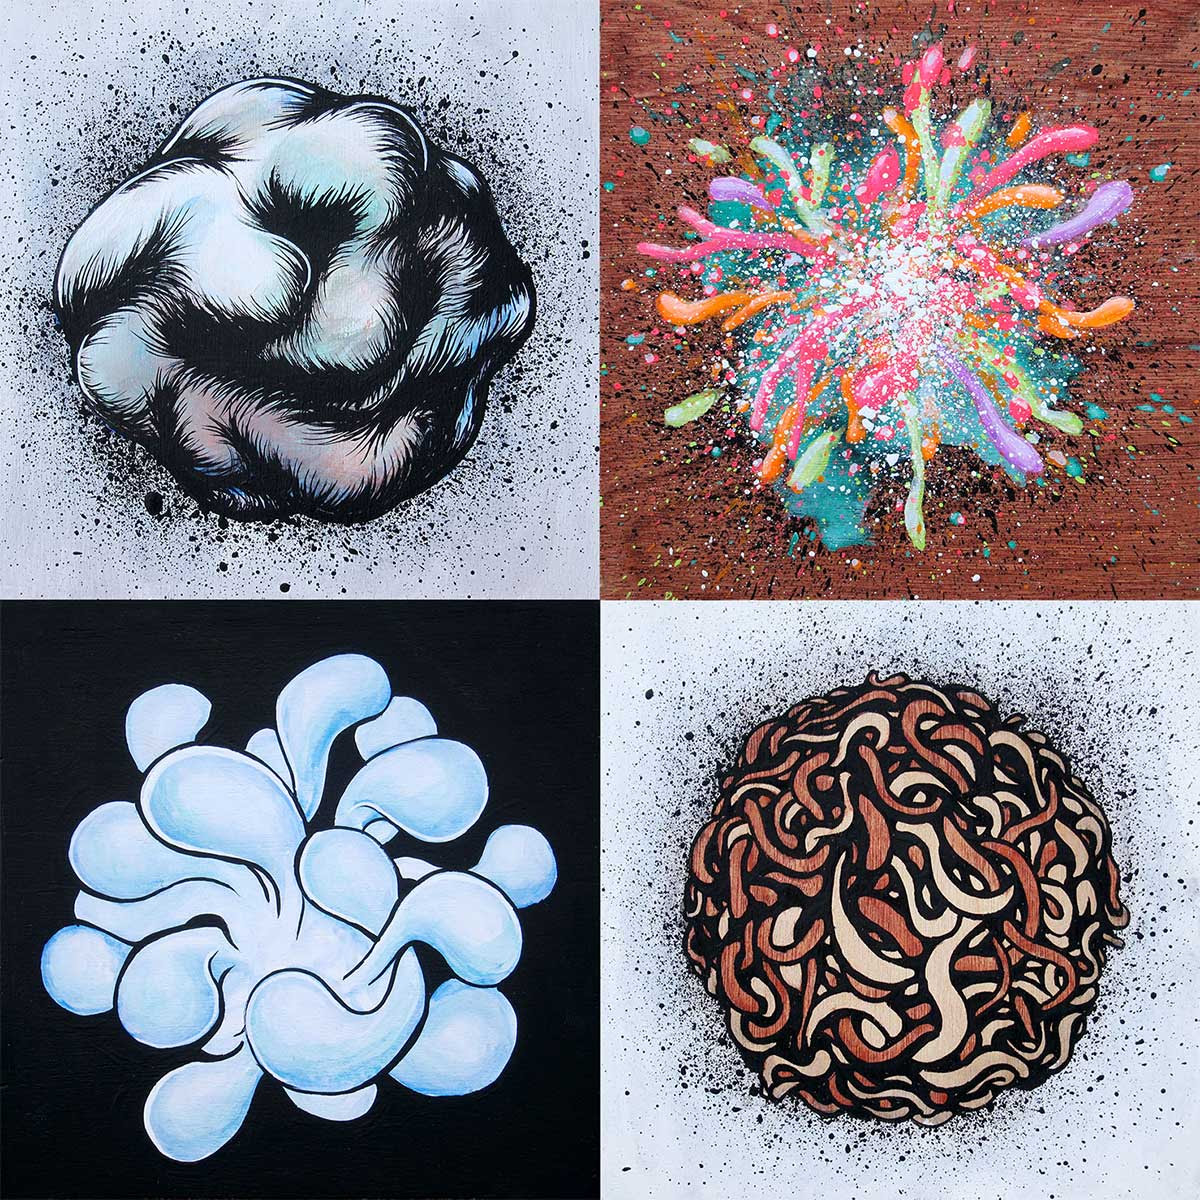 """Collective Unconscious Dissection 4x4"""" each acrylic, ink and wood stain on birch panels"""